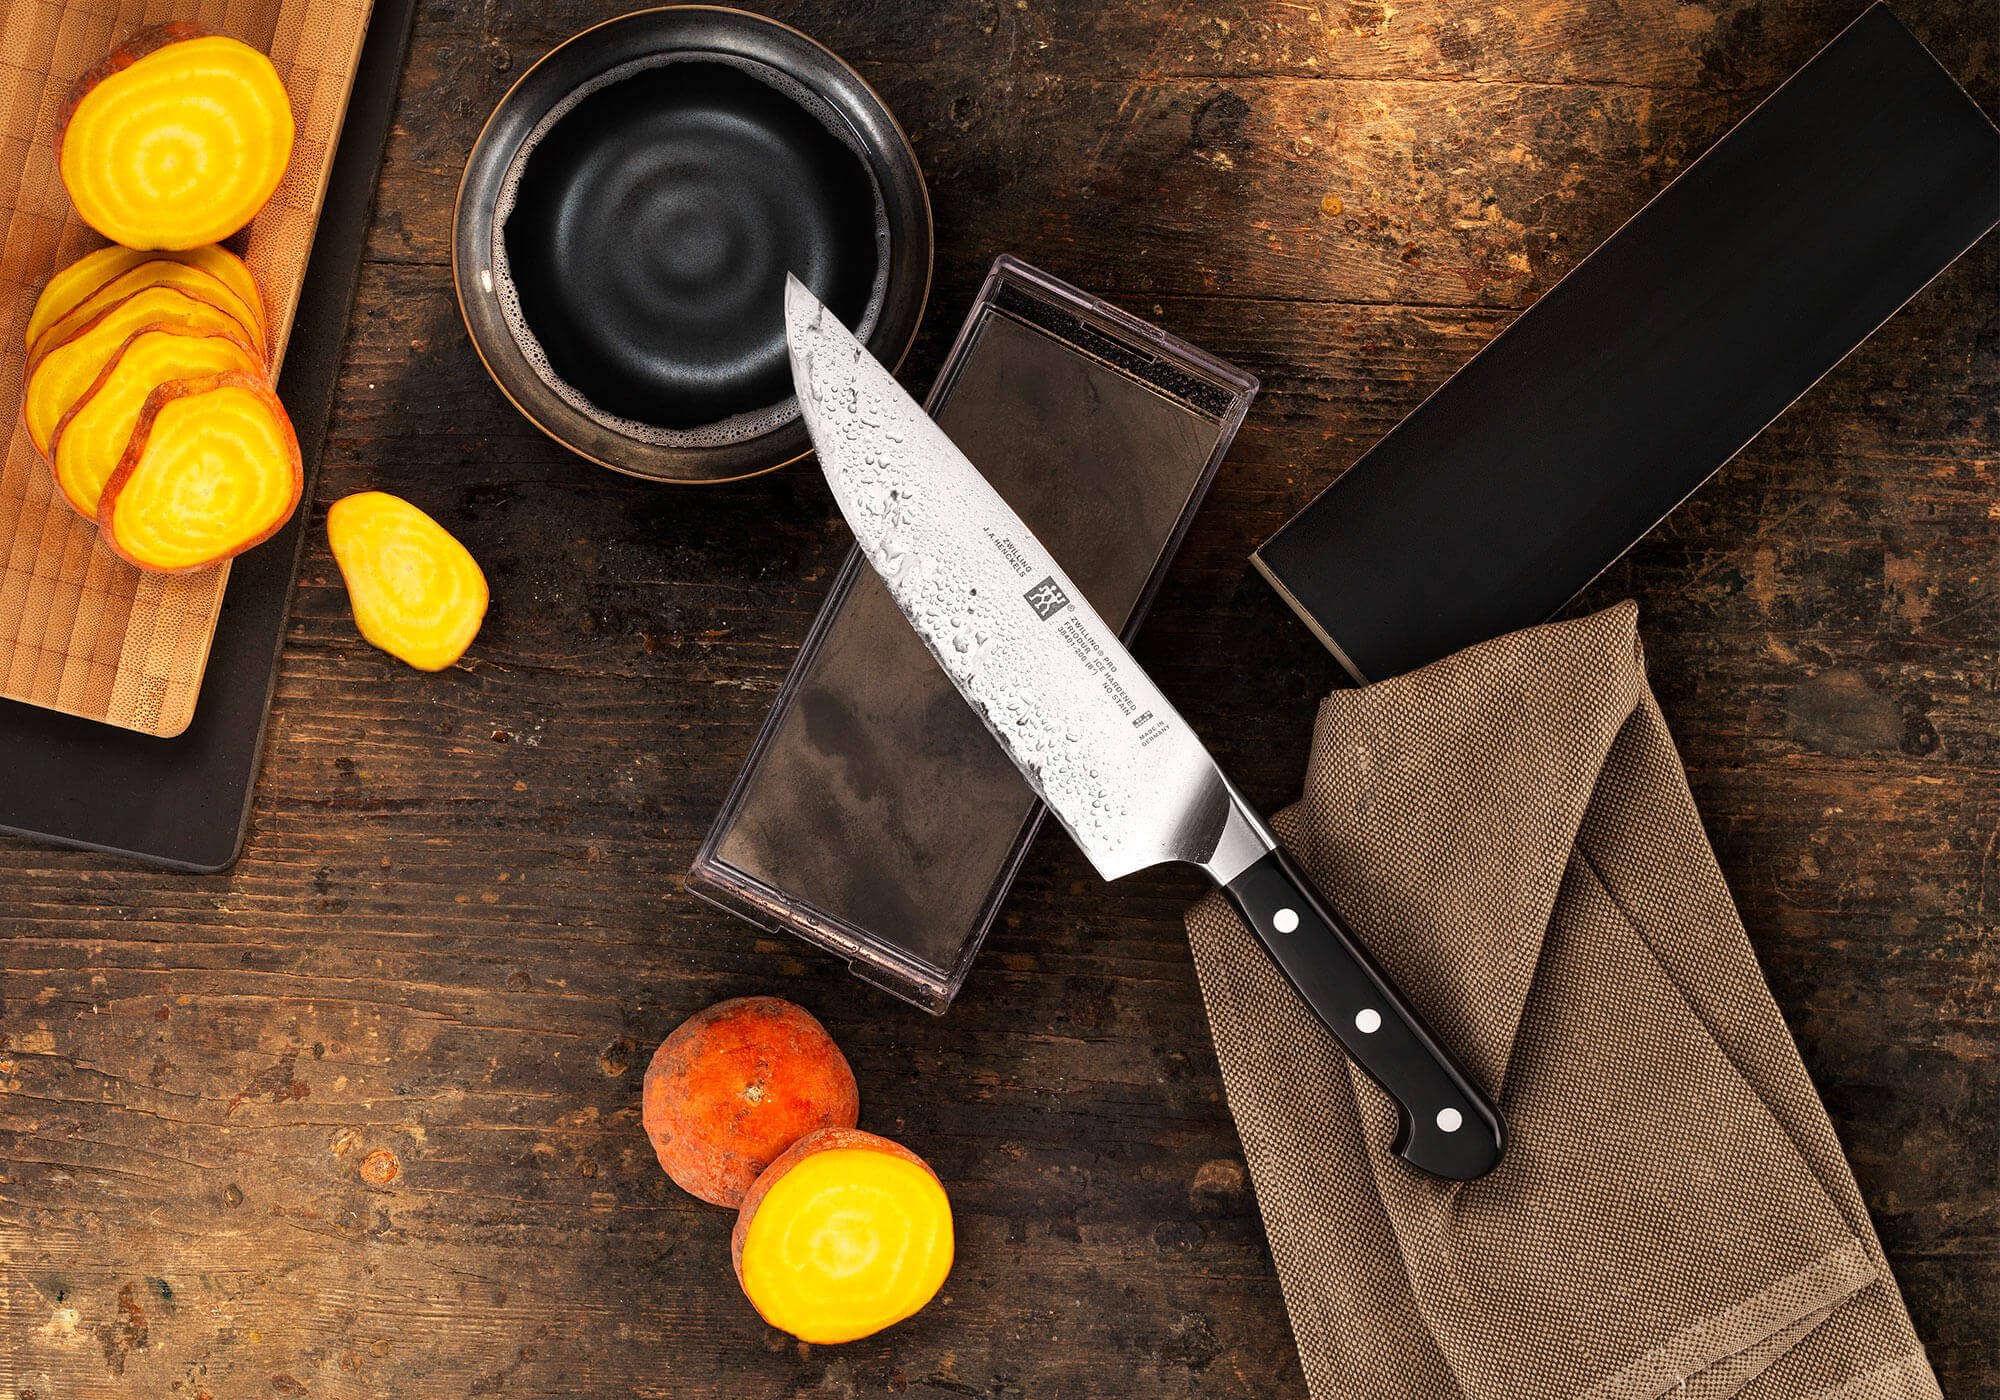 Buy Chefs Knives Official Zwilling Shop Samurai Pro Knife Stay Sharp How To Sharpen Your